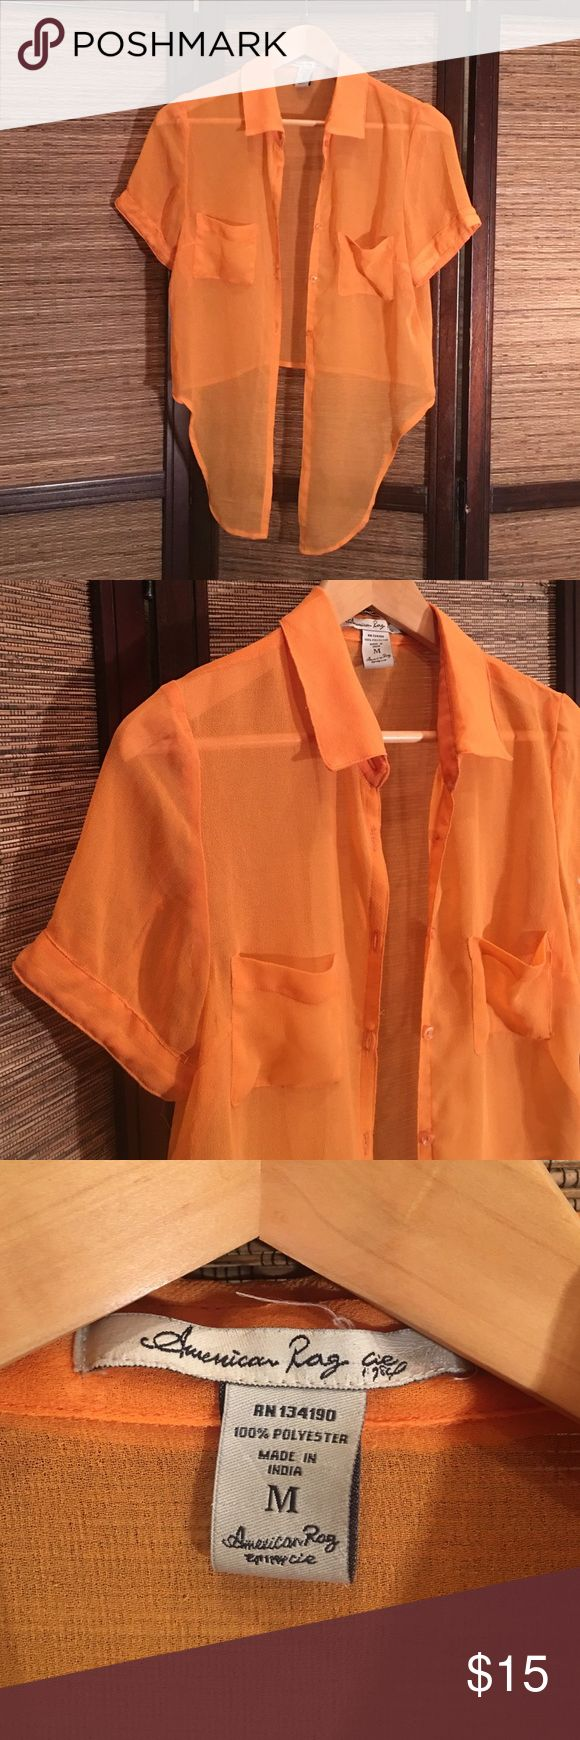 American Rag Crop Top Sheer orange crop top with tie front. Great for throwing over a tank top or lace bandeau. American Rag Tops Blouses